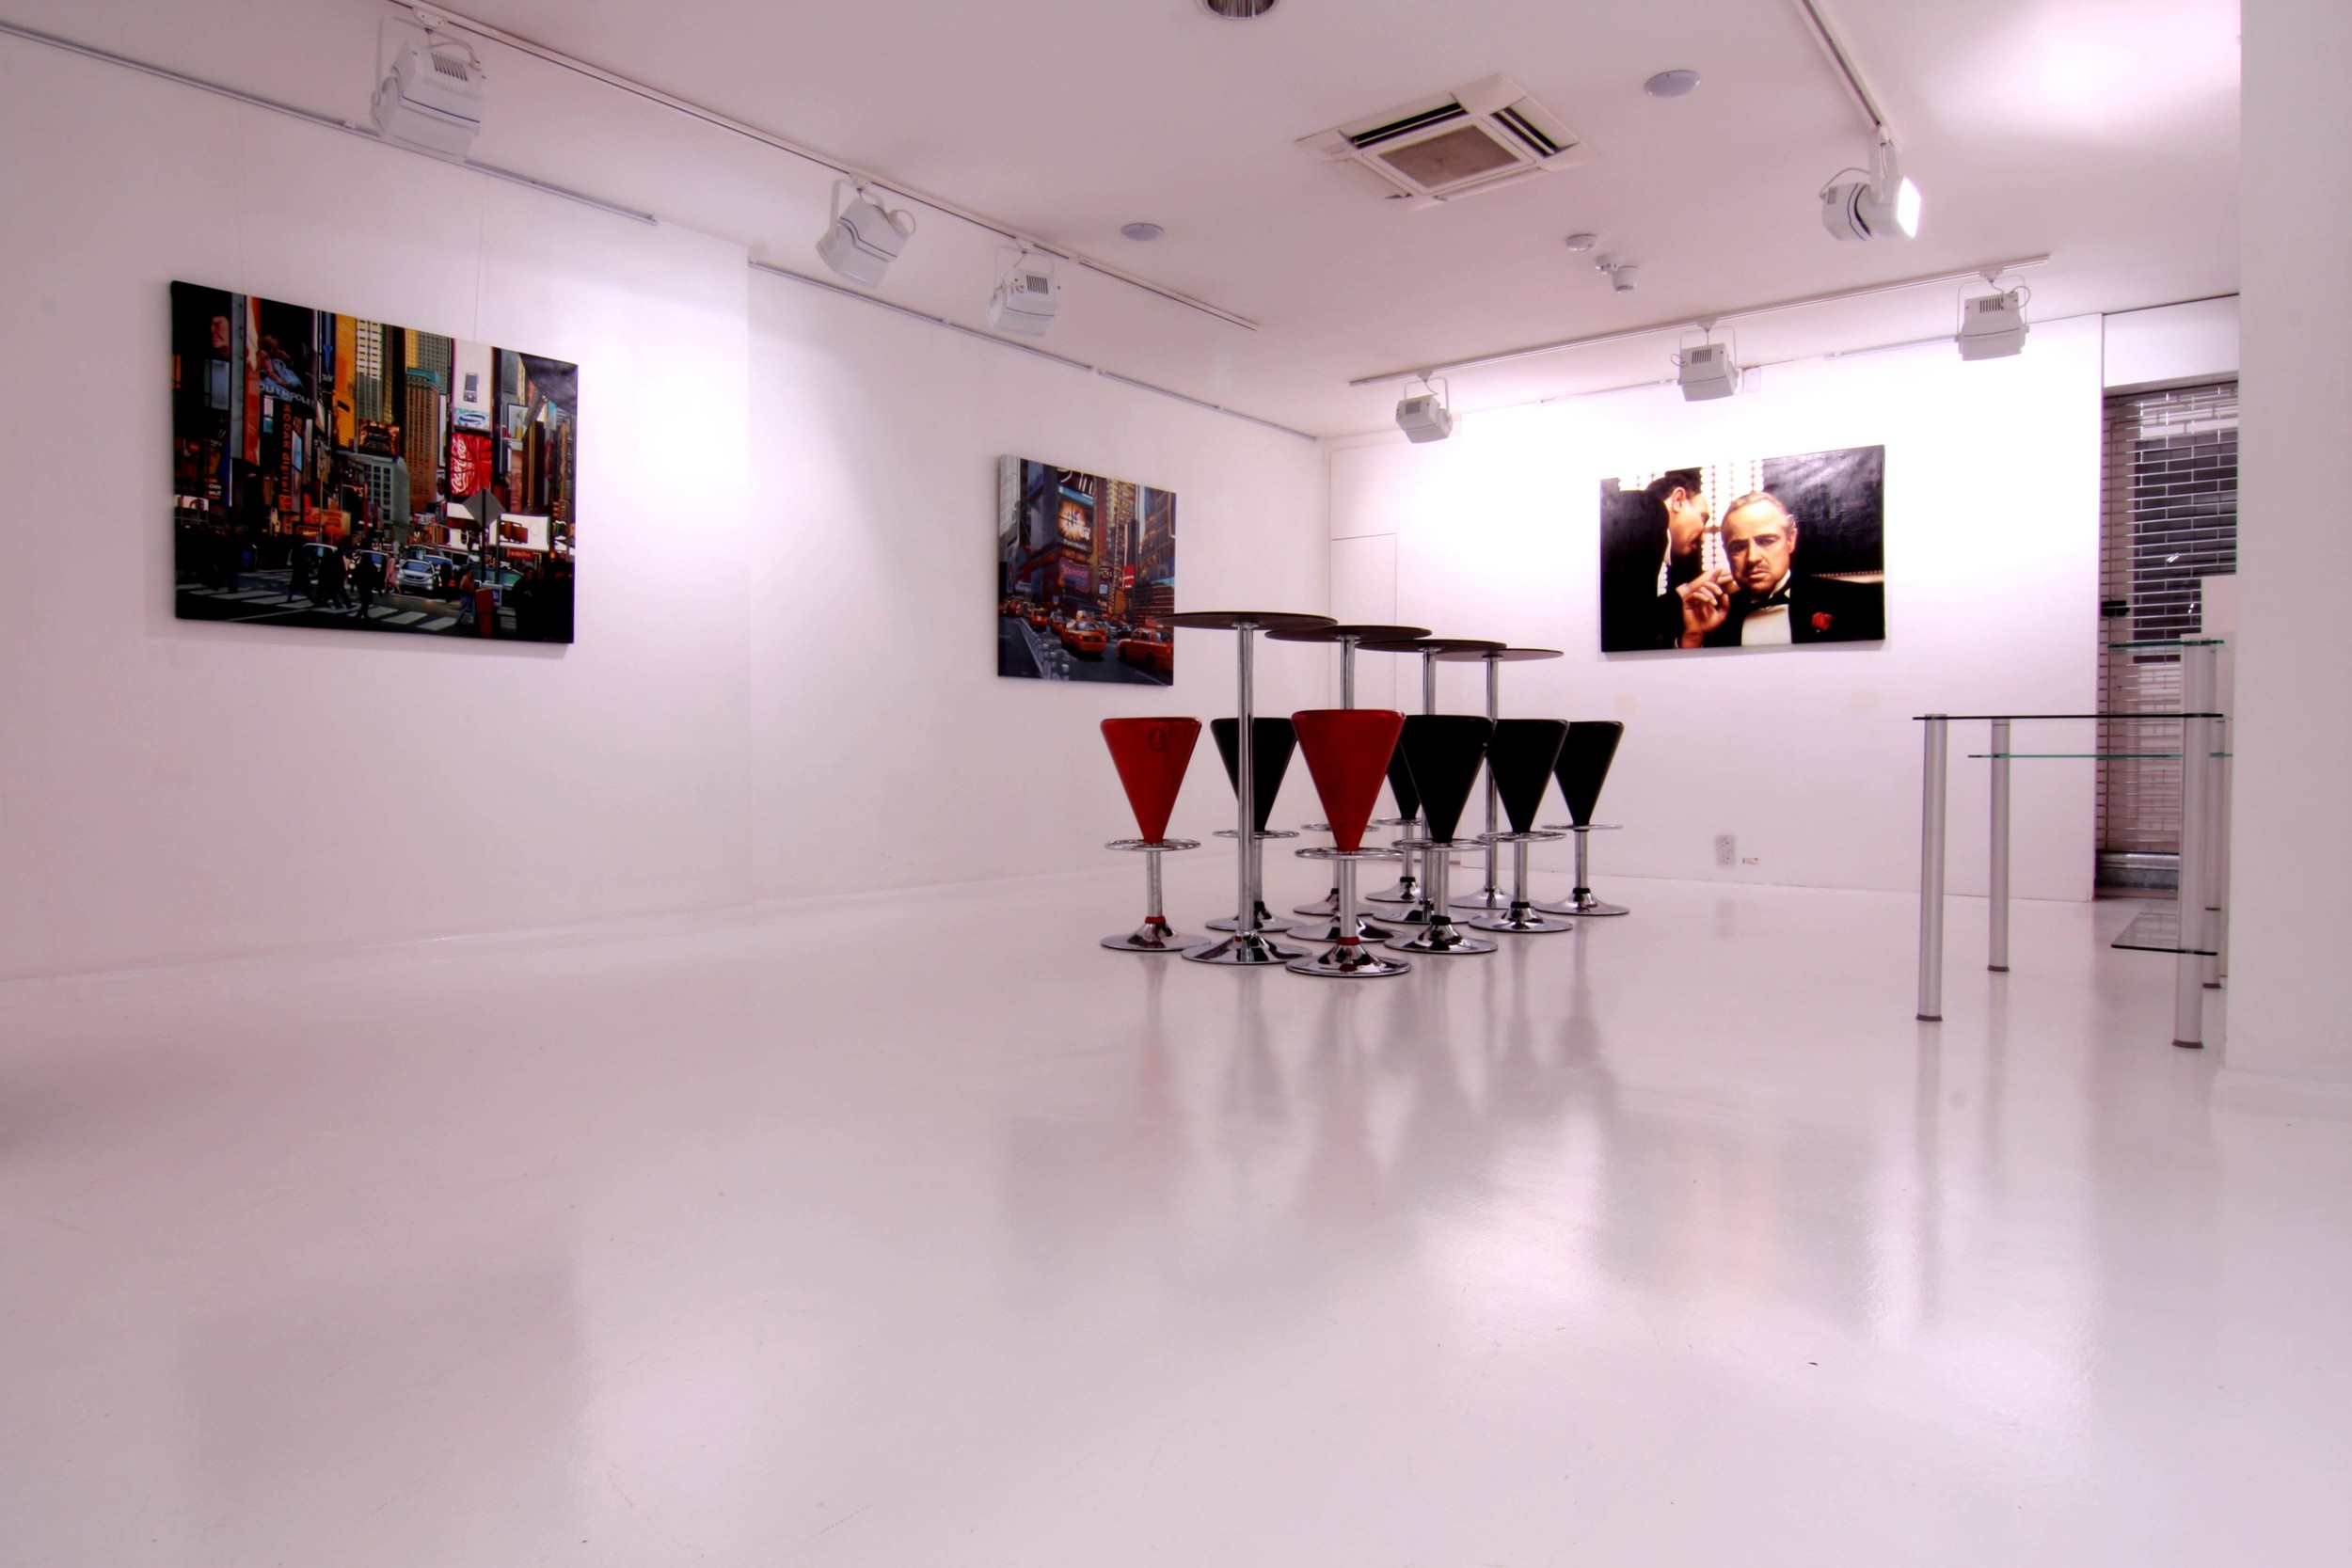 gallery pictures london 003.jpg